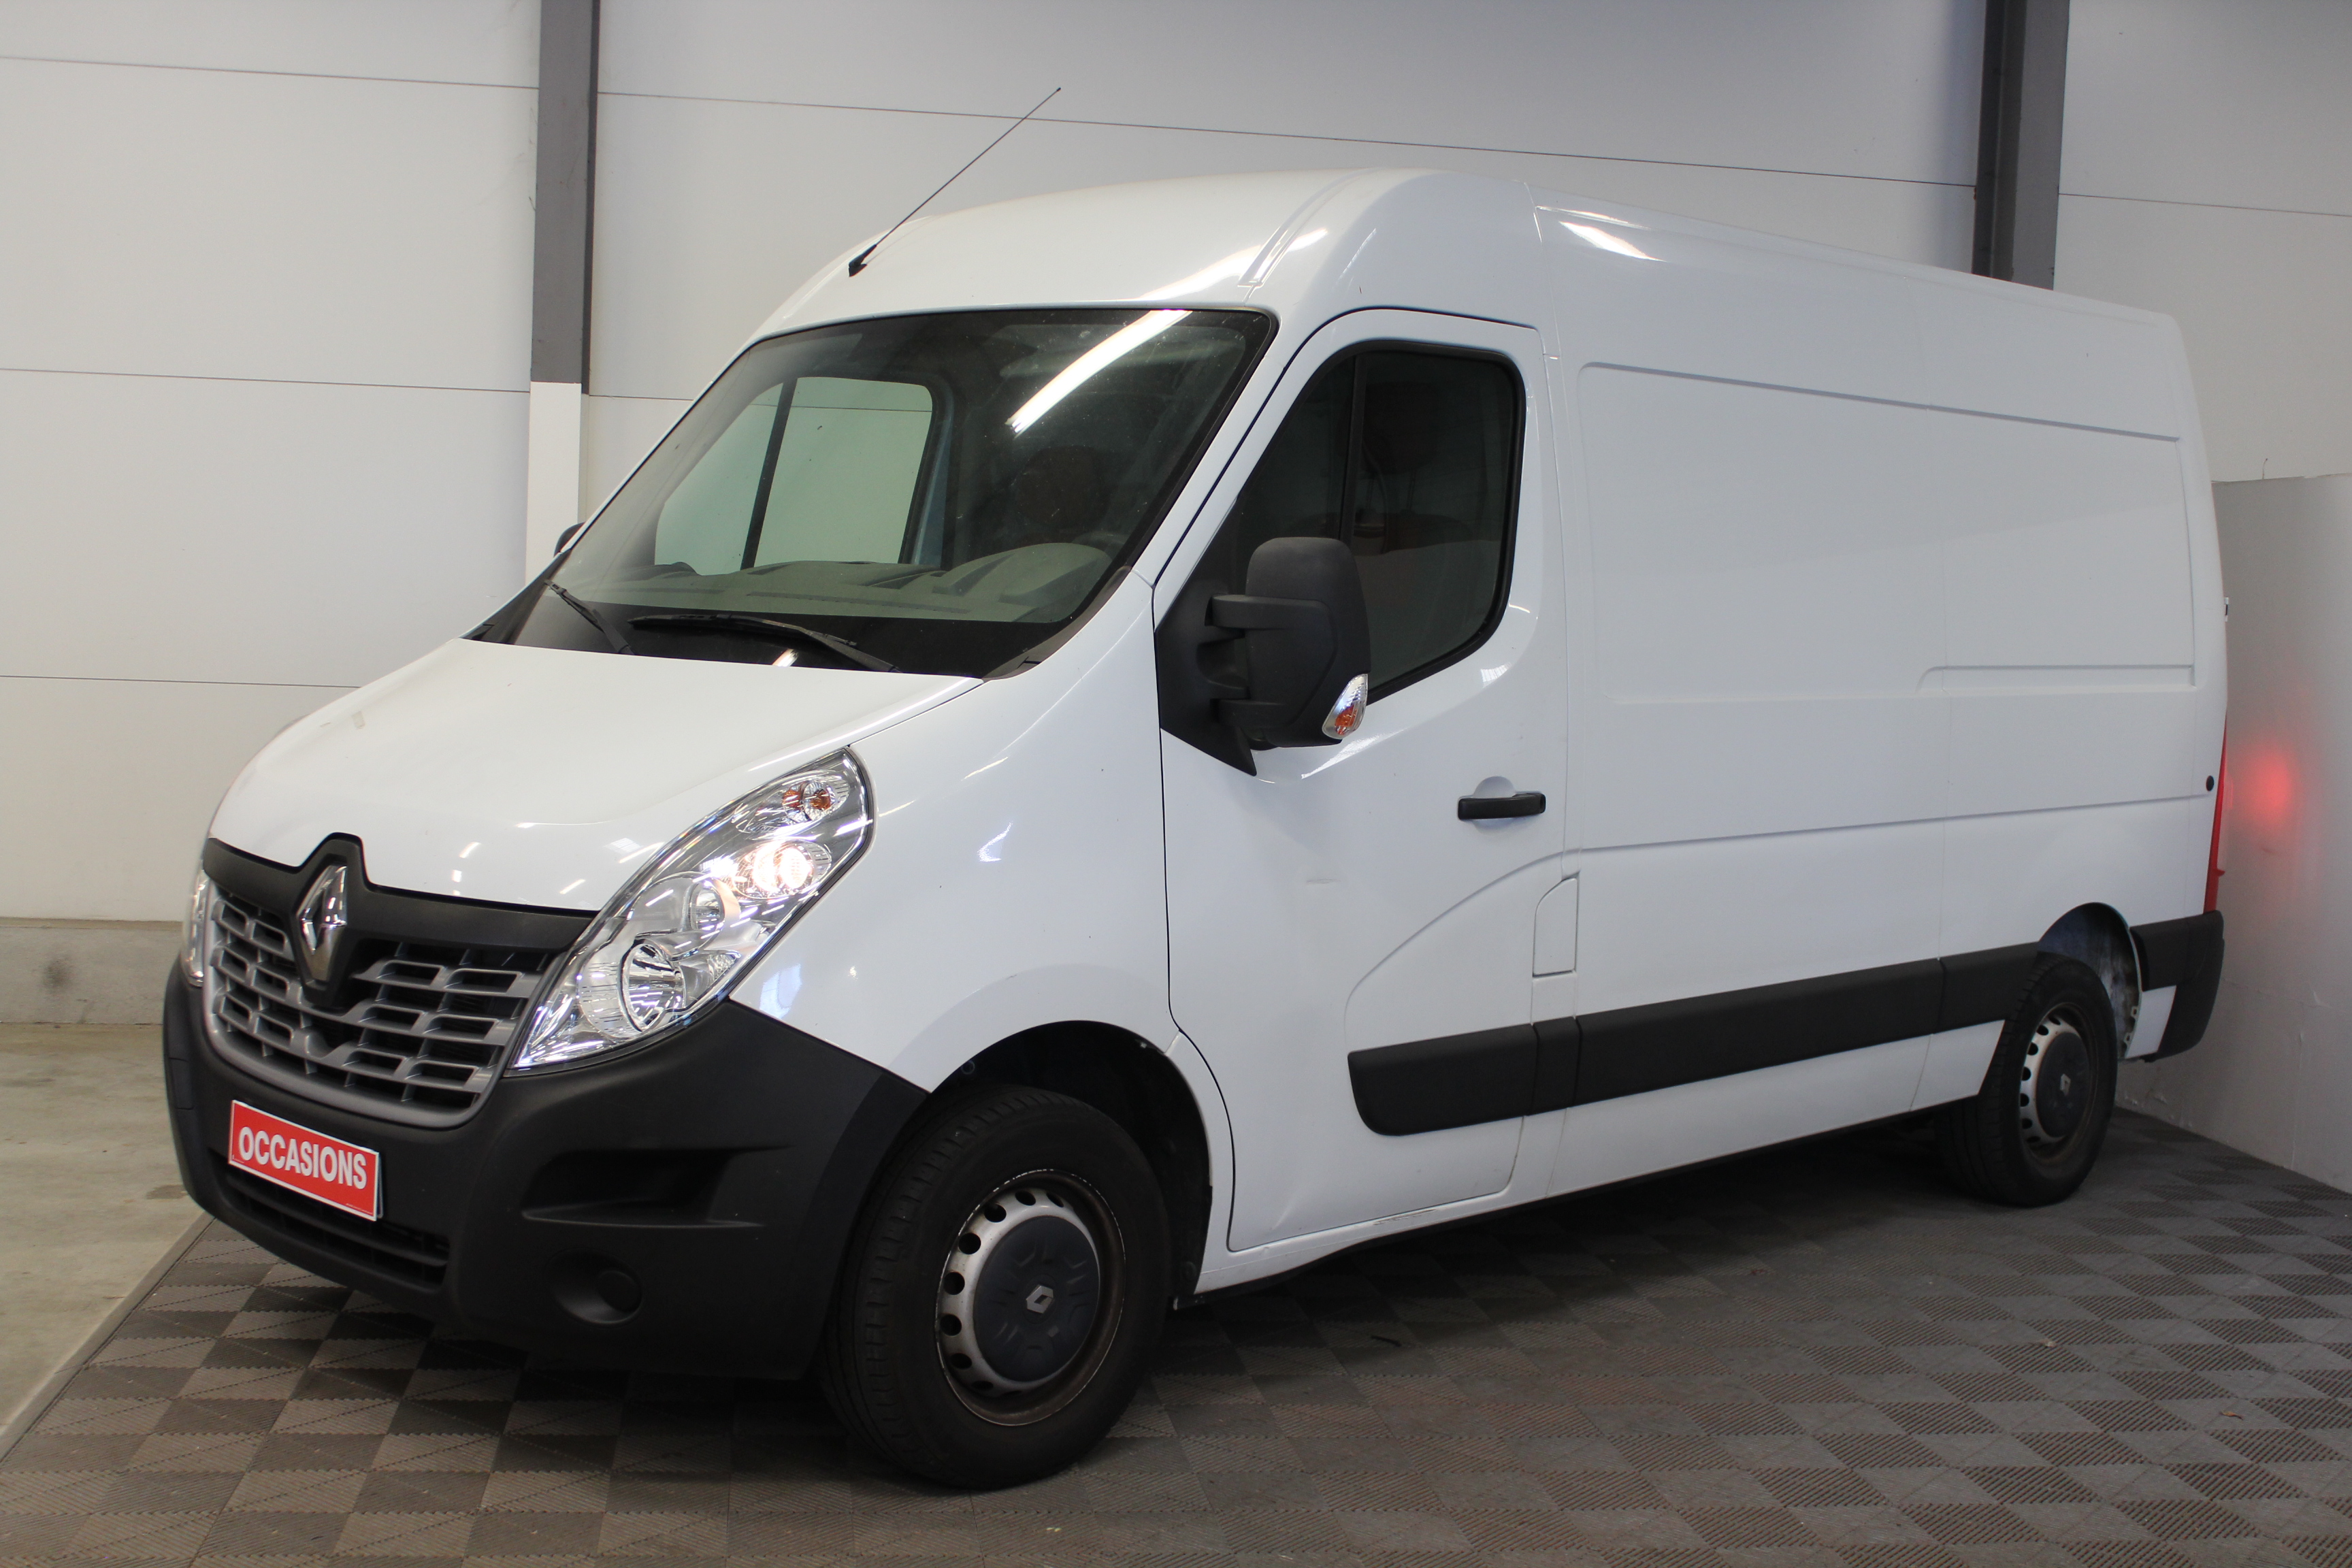 RENAULT MASTER III FG FG GCF TRAC F3500 L2H2 DCI 125 (TFG 2 223 D6) d'occasion